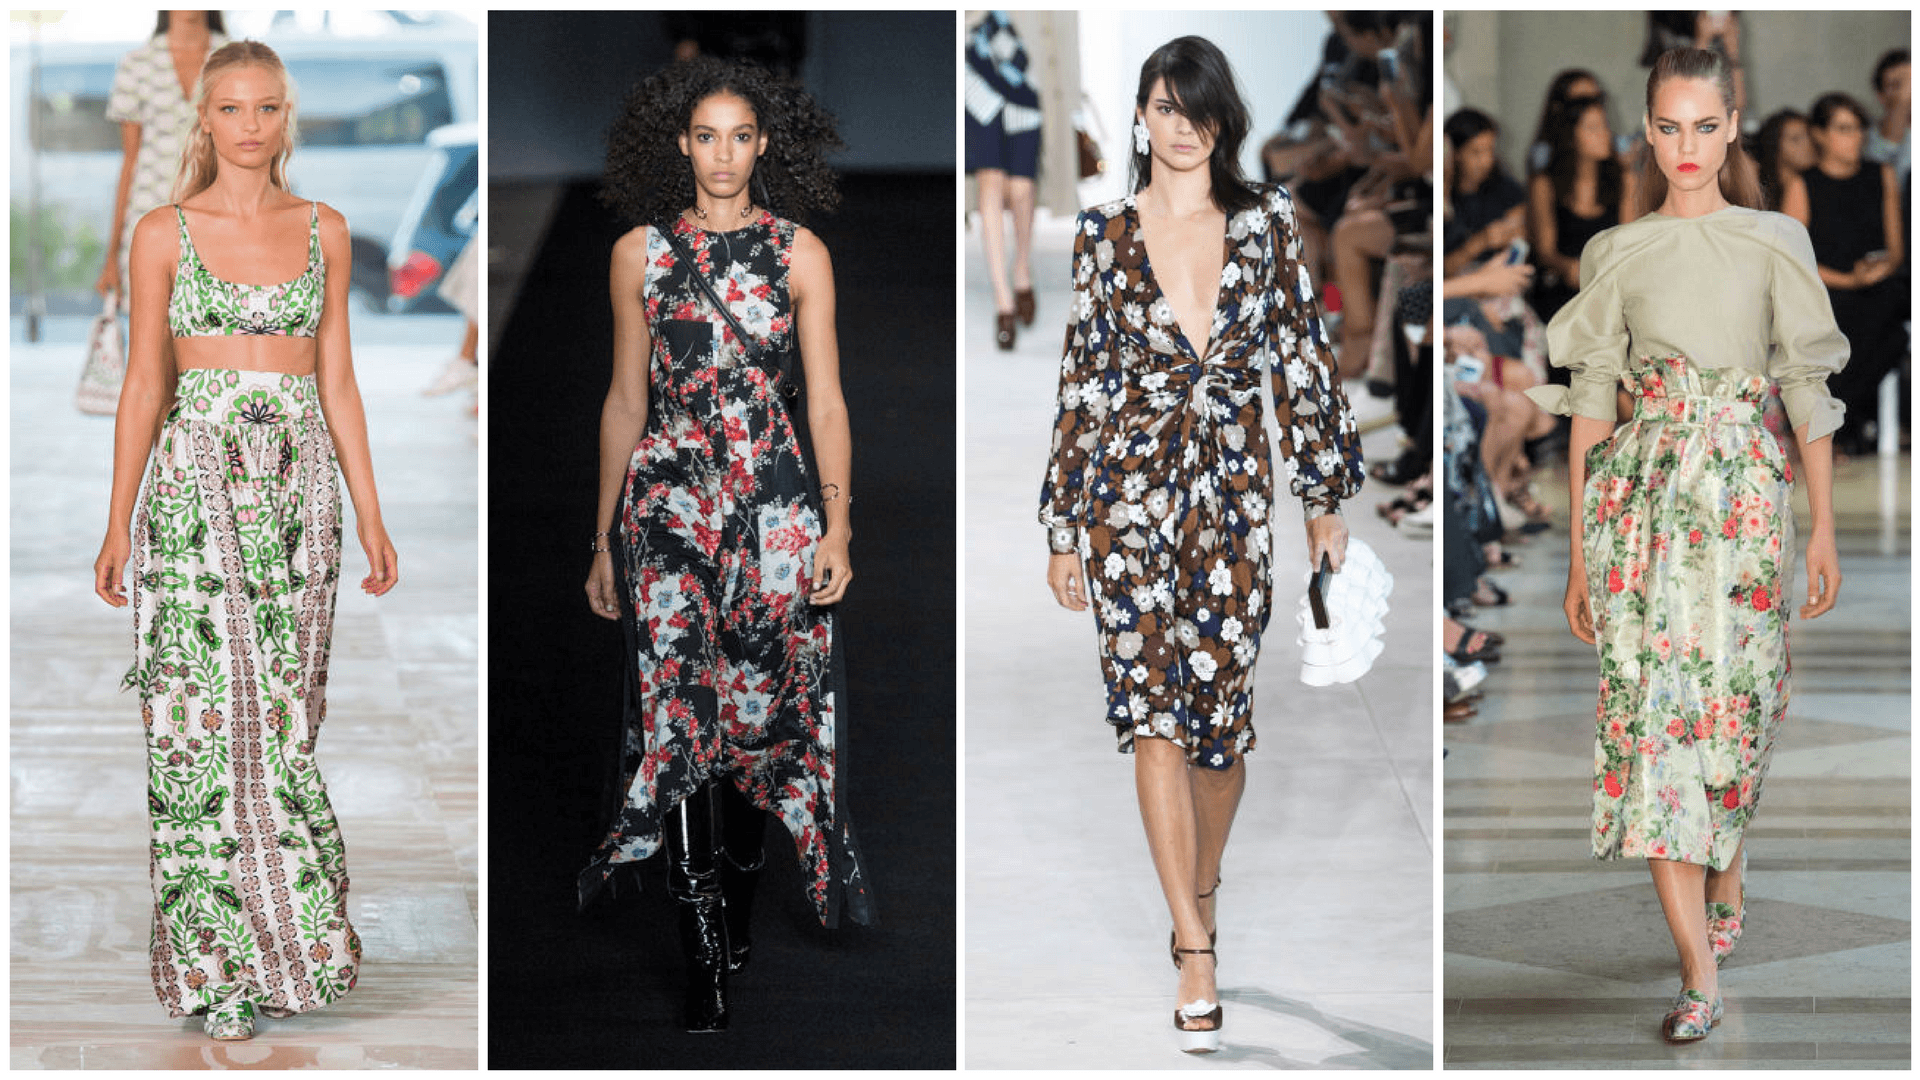 TOP FIVE SPRING SUMMER 2017 FASHION TRENDS